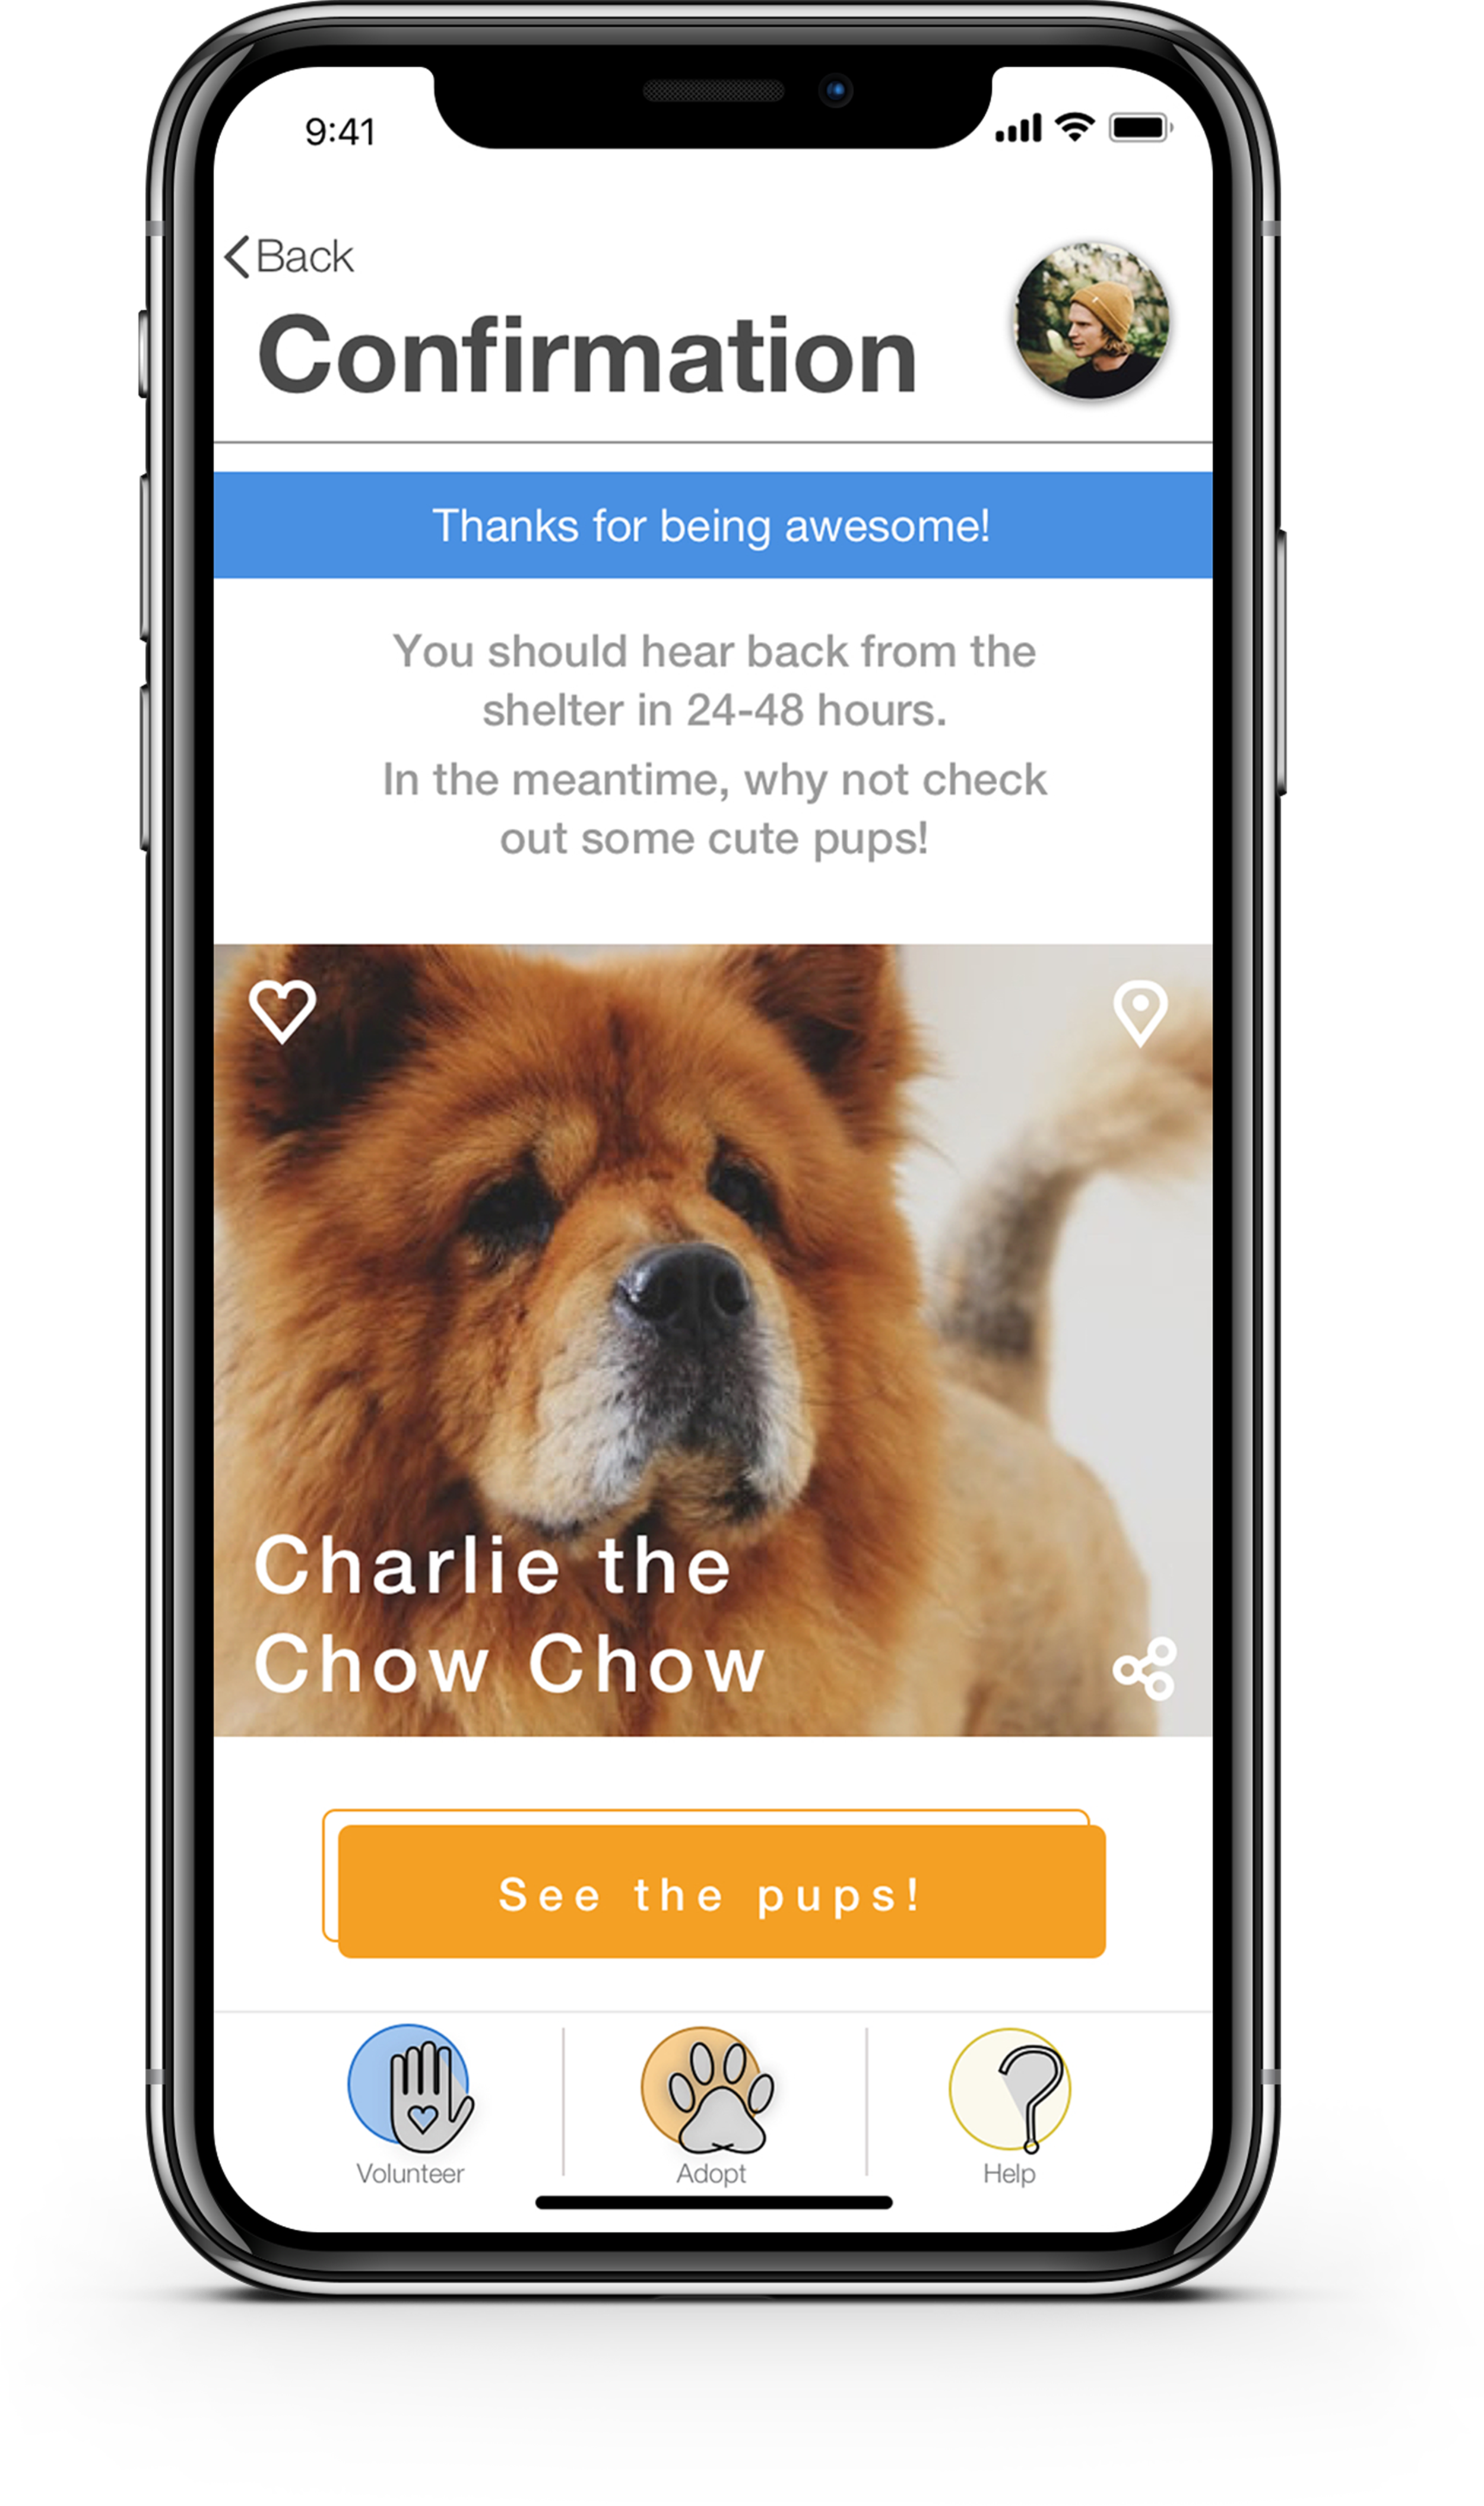 """Confirmation pages are a great chance to include a CTA . The user is probably feeling positive and a large """"See the pups!"""" has a great chance of getting clicked. This button would bring the user to the adoption page, hopefully resulting in more dogs with homes!"""